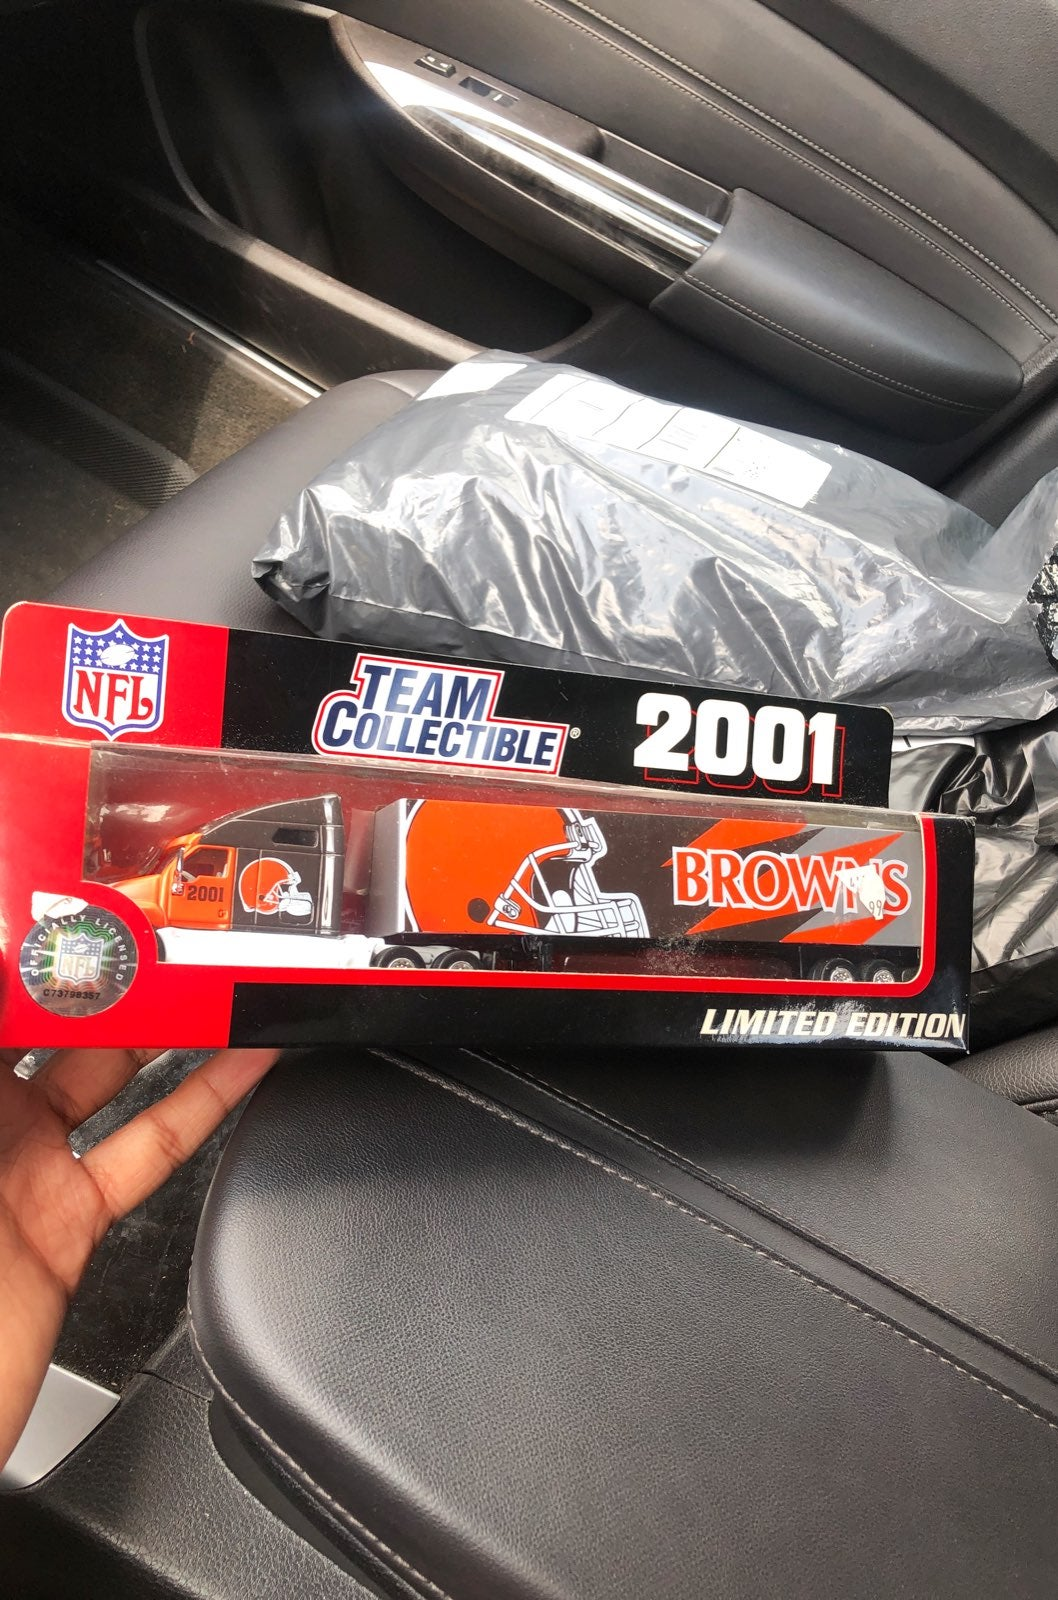 2001 NFL team collectible Browns truck